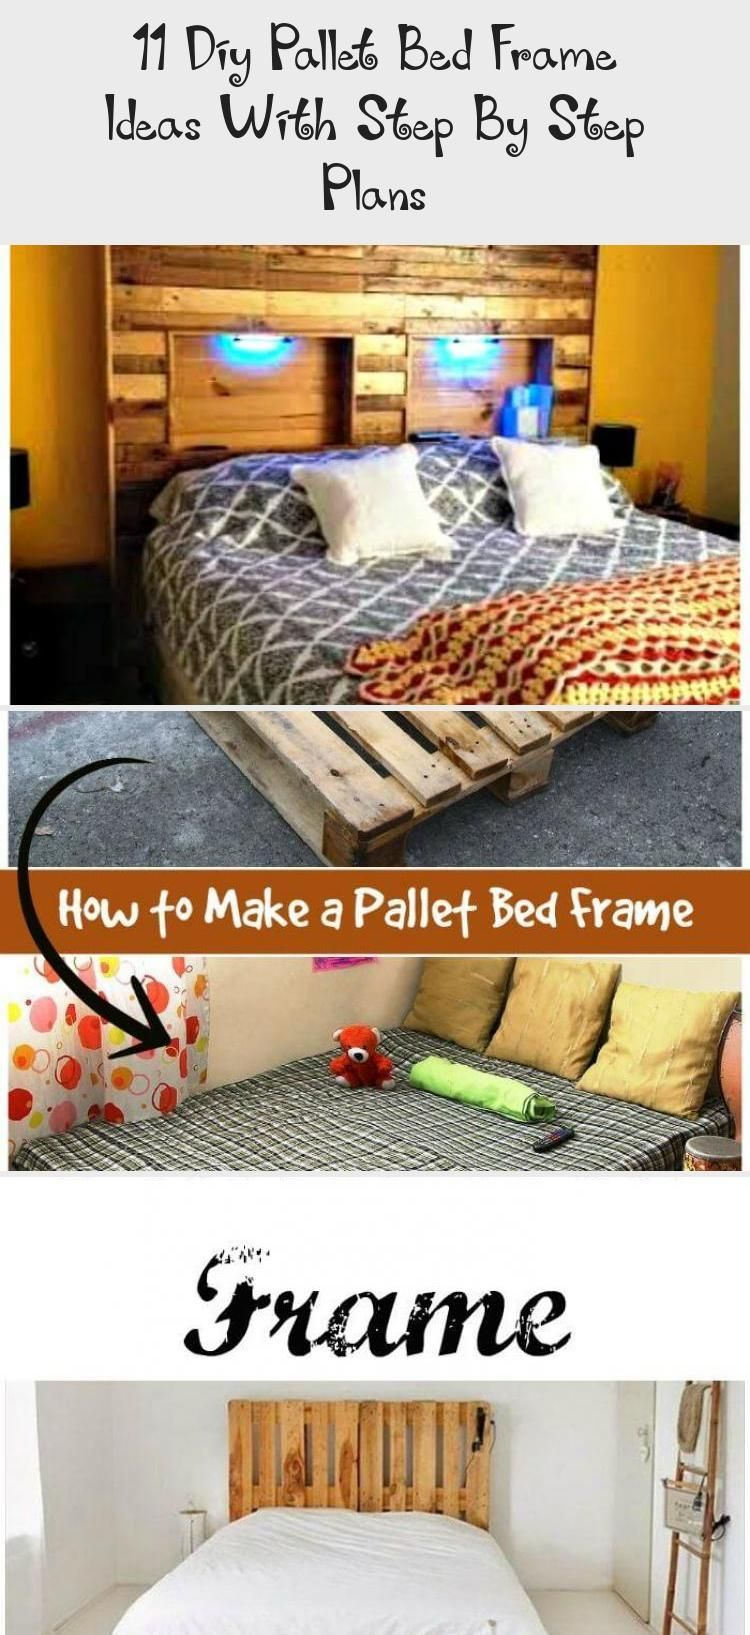 11 Diy Pallet Bed Frame Ideas With Step By Step Plans - Pallet -  Easy But Great Wooden Pallet Bed Frame – DIY Pallet Furniture Projects #diypalletBedFrame #diypal - #Bed #boysbedroom #DIY #frame #ideas #pallet #plans #sofabeddiy #Step #woodenbeddiy